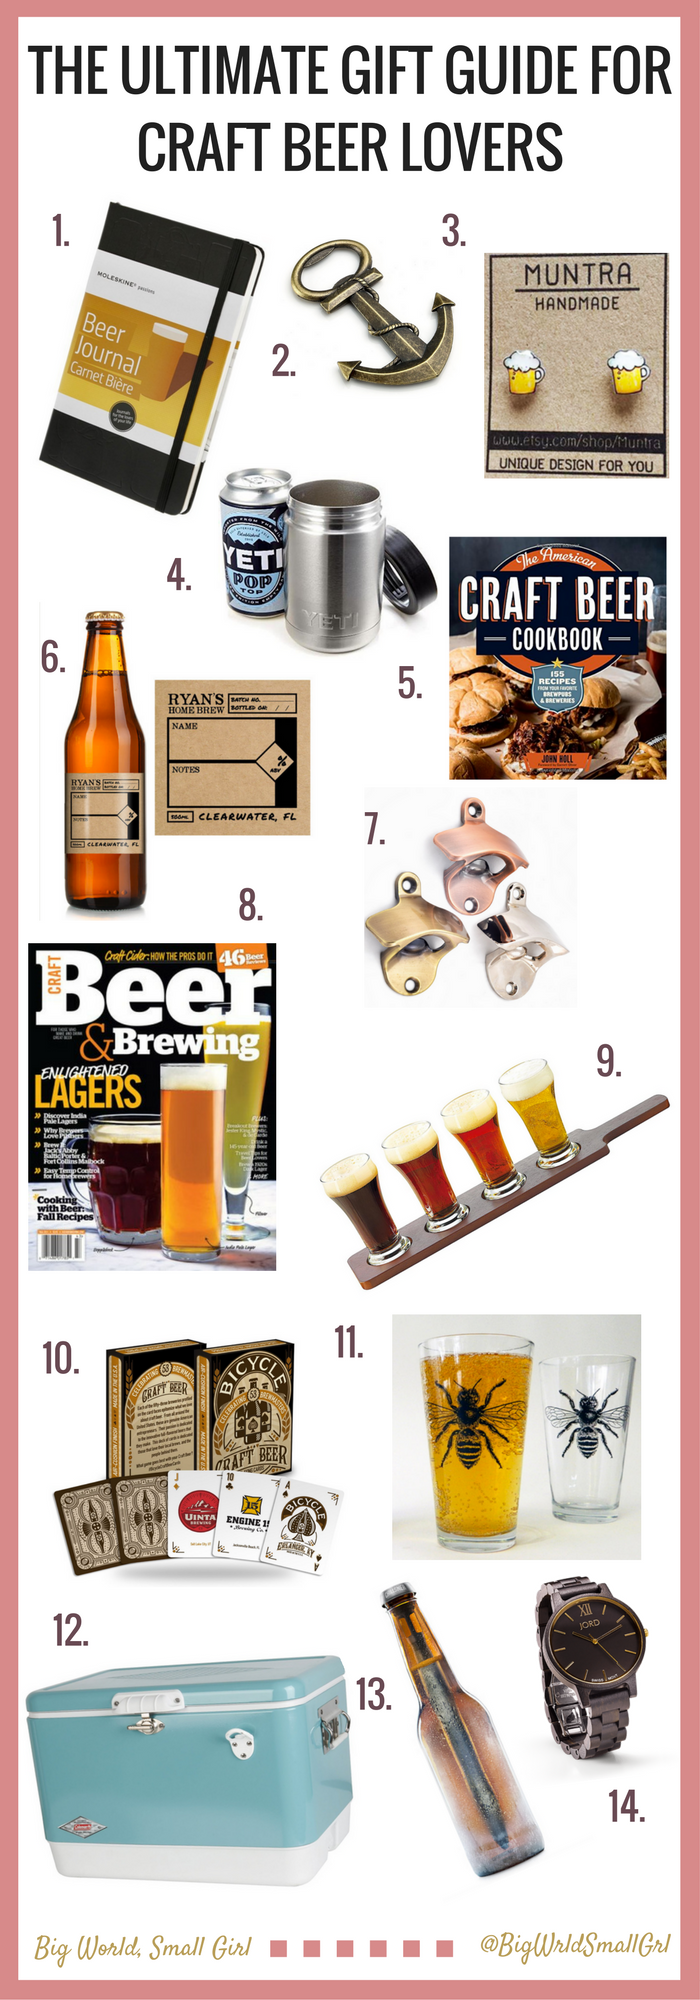 32 Beer Gifts For The Craft Beer Lover In Your Life Beer Gifts Craft Beer Lover Gifts Gifts For Beer Lovers